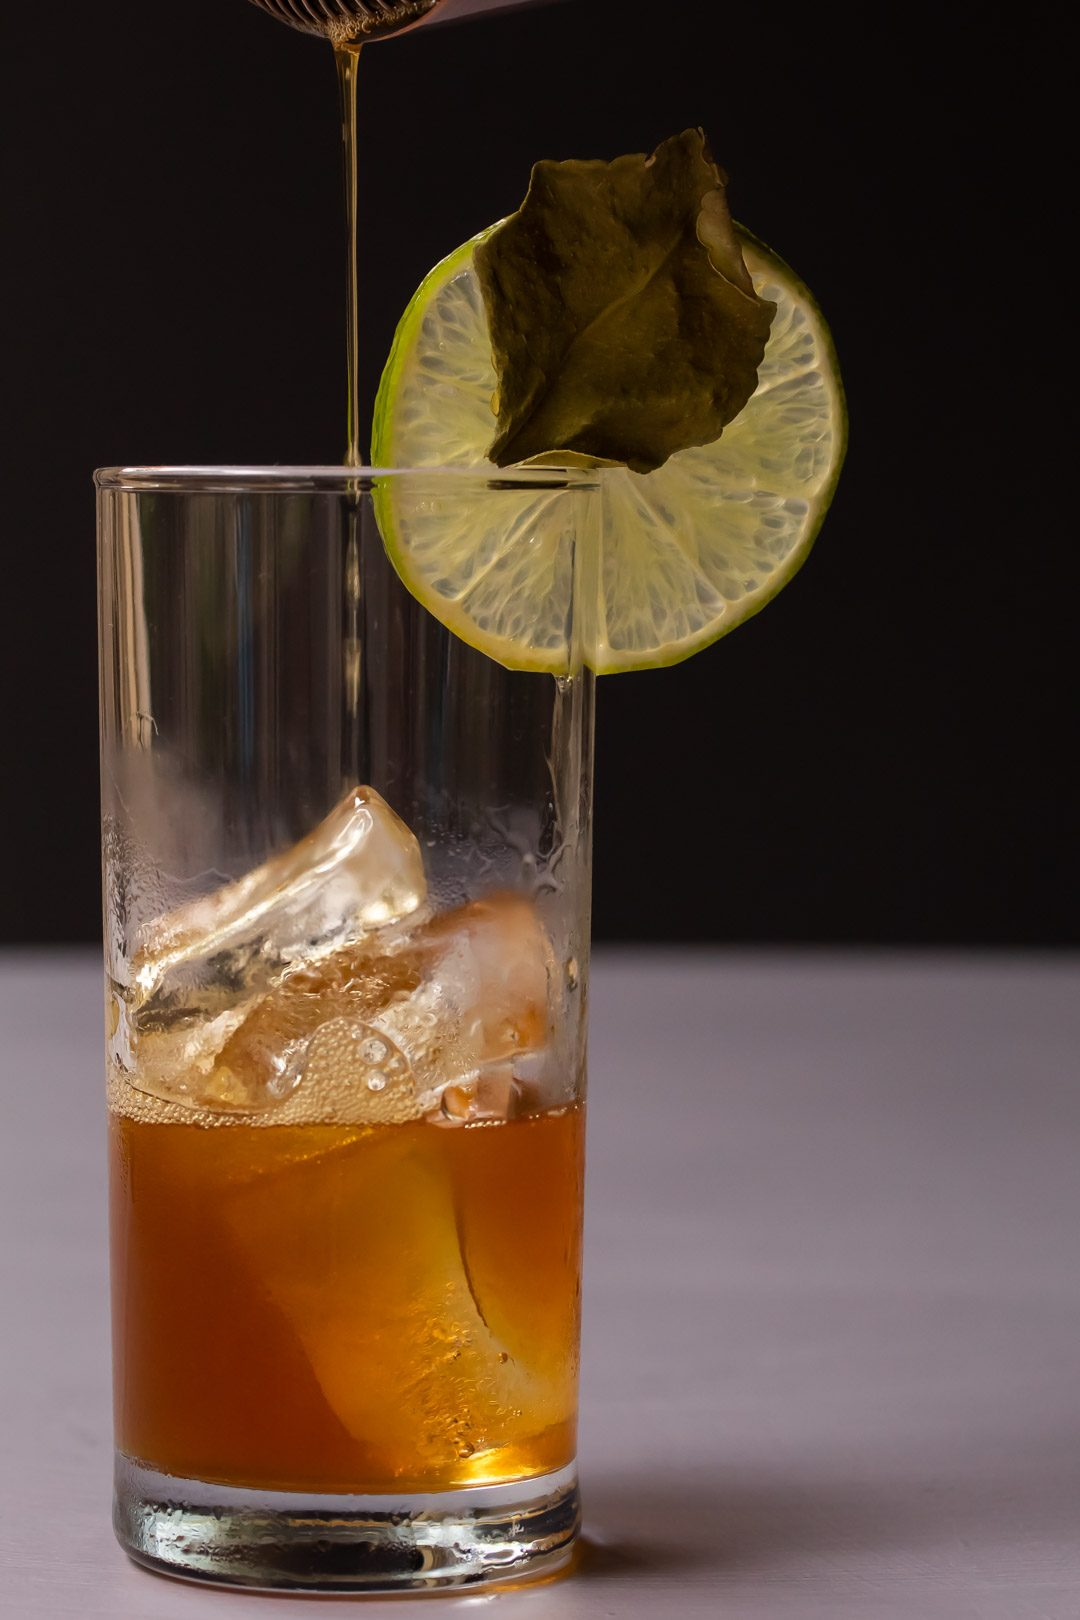 lime lightening dark 'n stormy finish pouring rum and lime